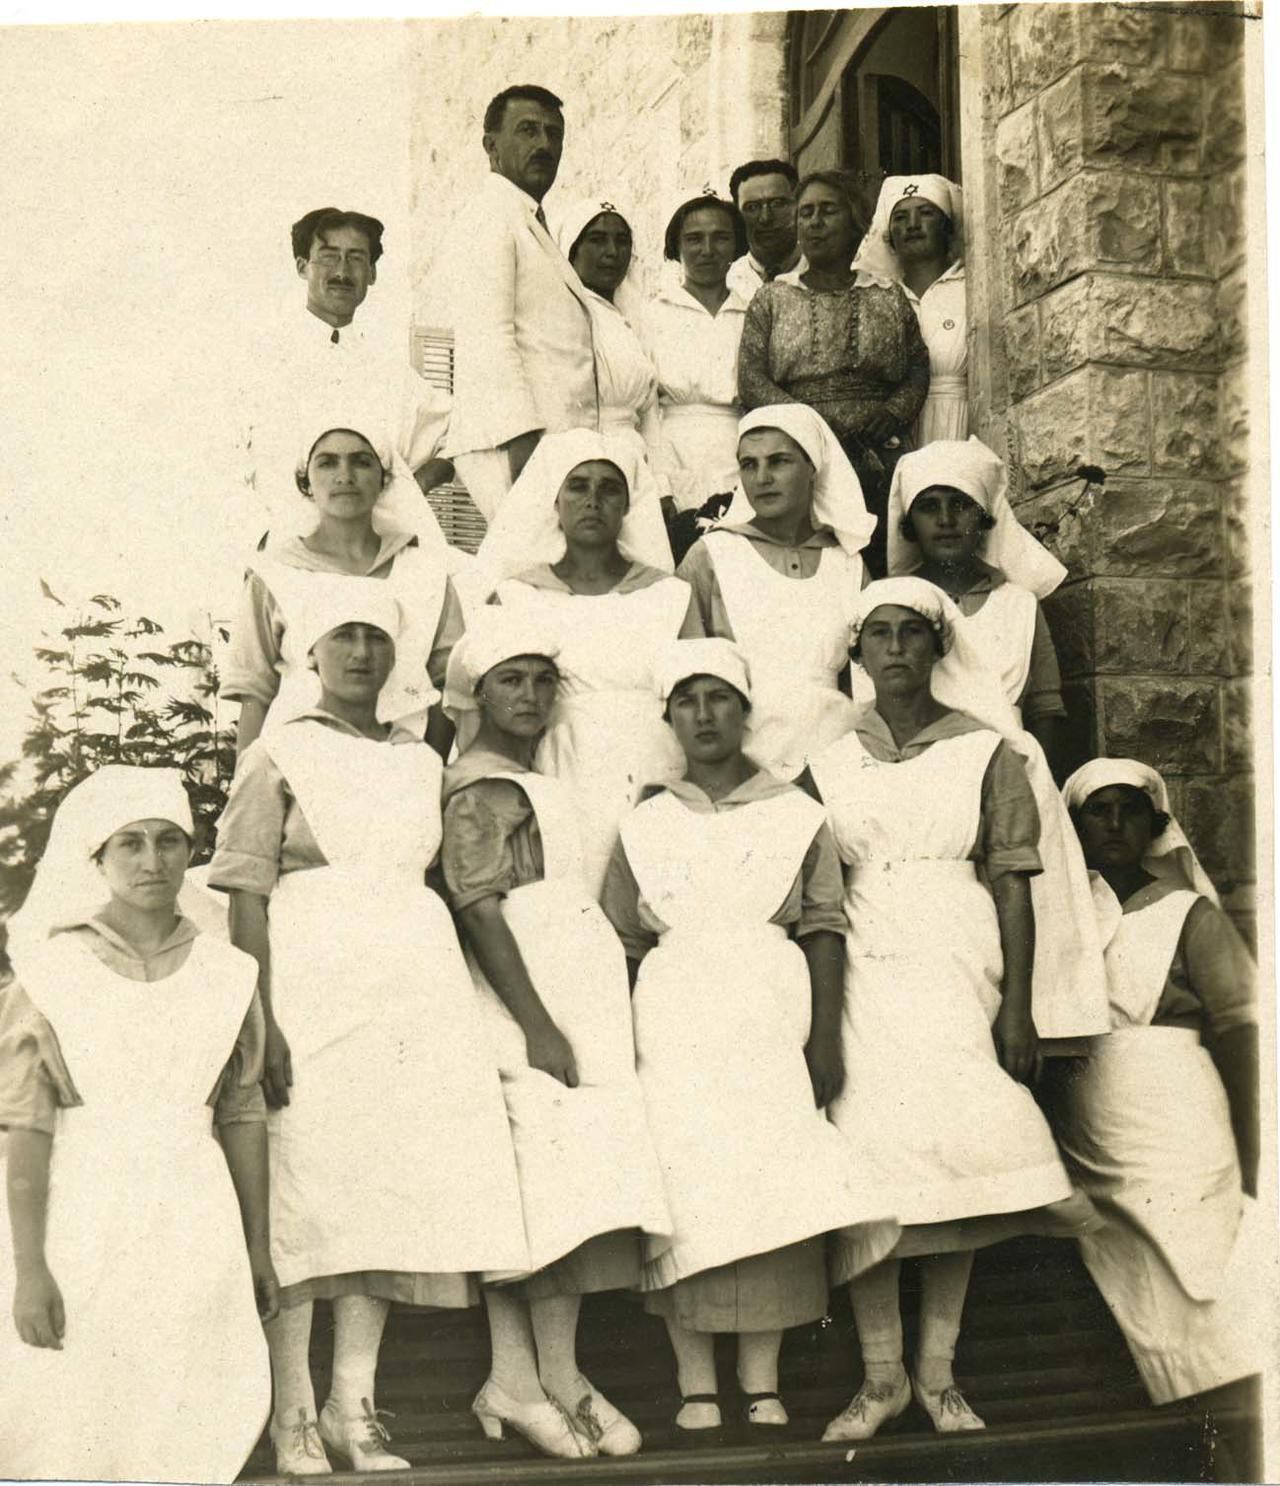 Henrietta Szold and Nurses in Haifa